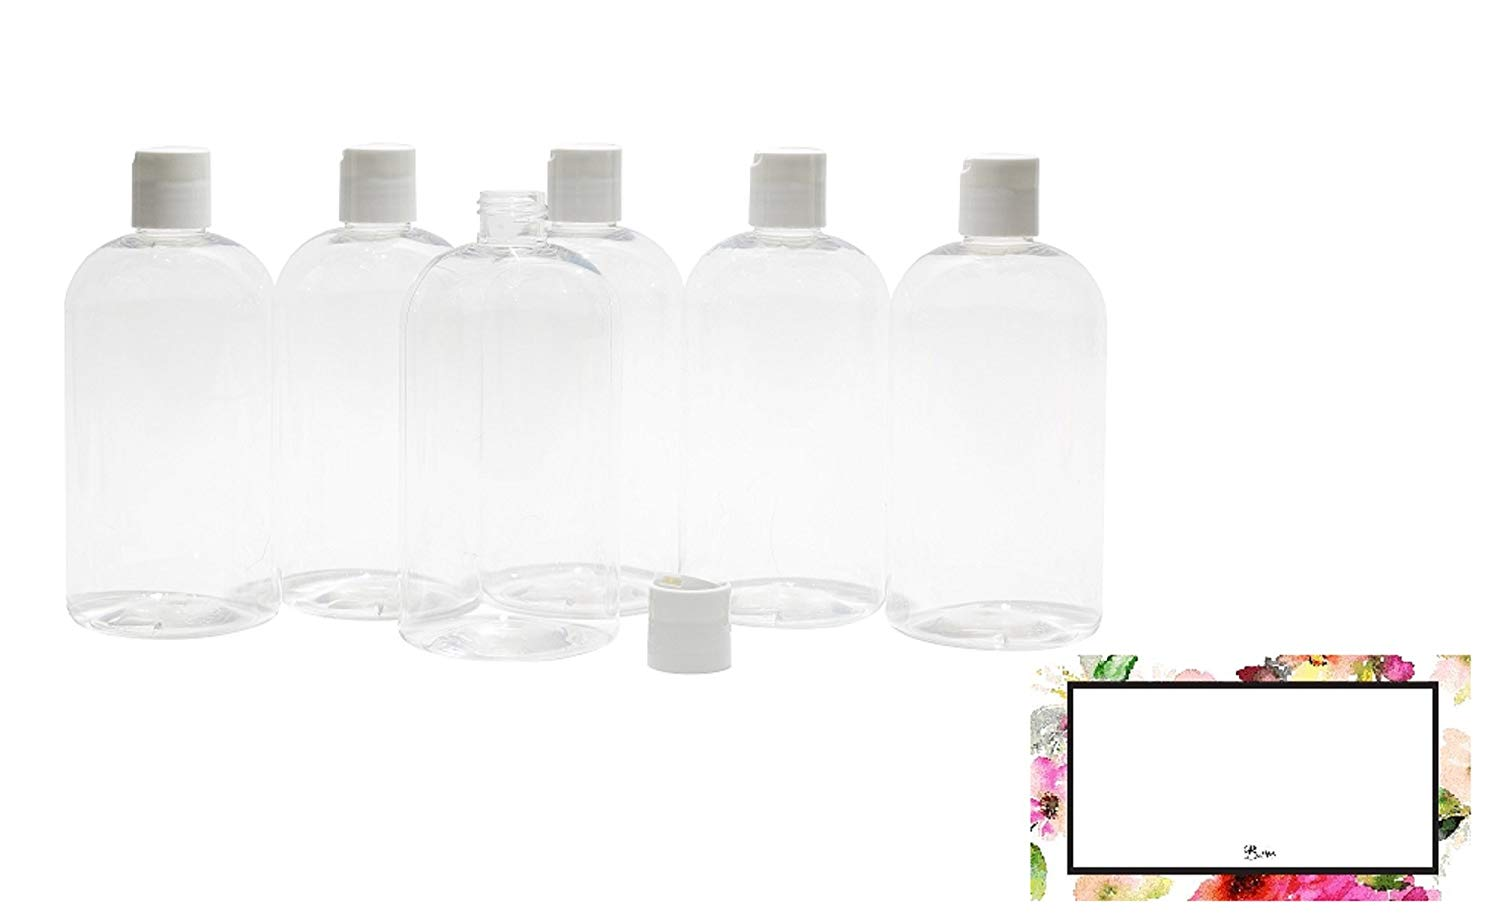 BAIRE BOTTLES - 16 OZ CLEAR PLASTIC REFILLABLE BOTTLES with WHITE HAND-PRESS FLIP DISC CAPS, ORGANIZE Soap, Shampoo, Lotion with a Clean Look, PET, Lightweight, BPA Free, 6 Pack, BONUS 6 FLORAL LABELS